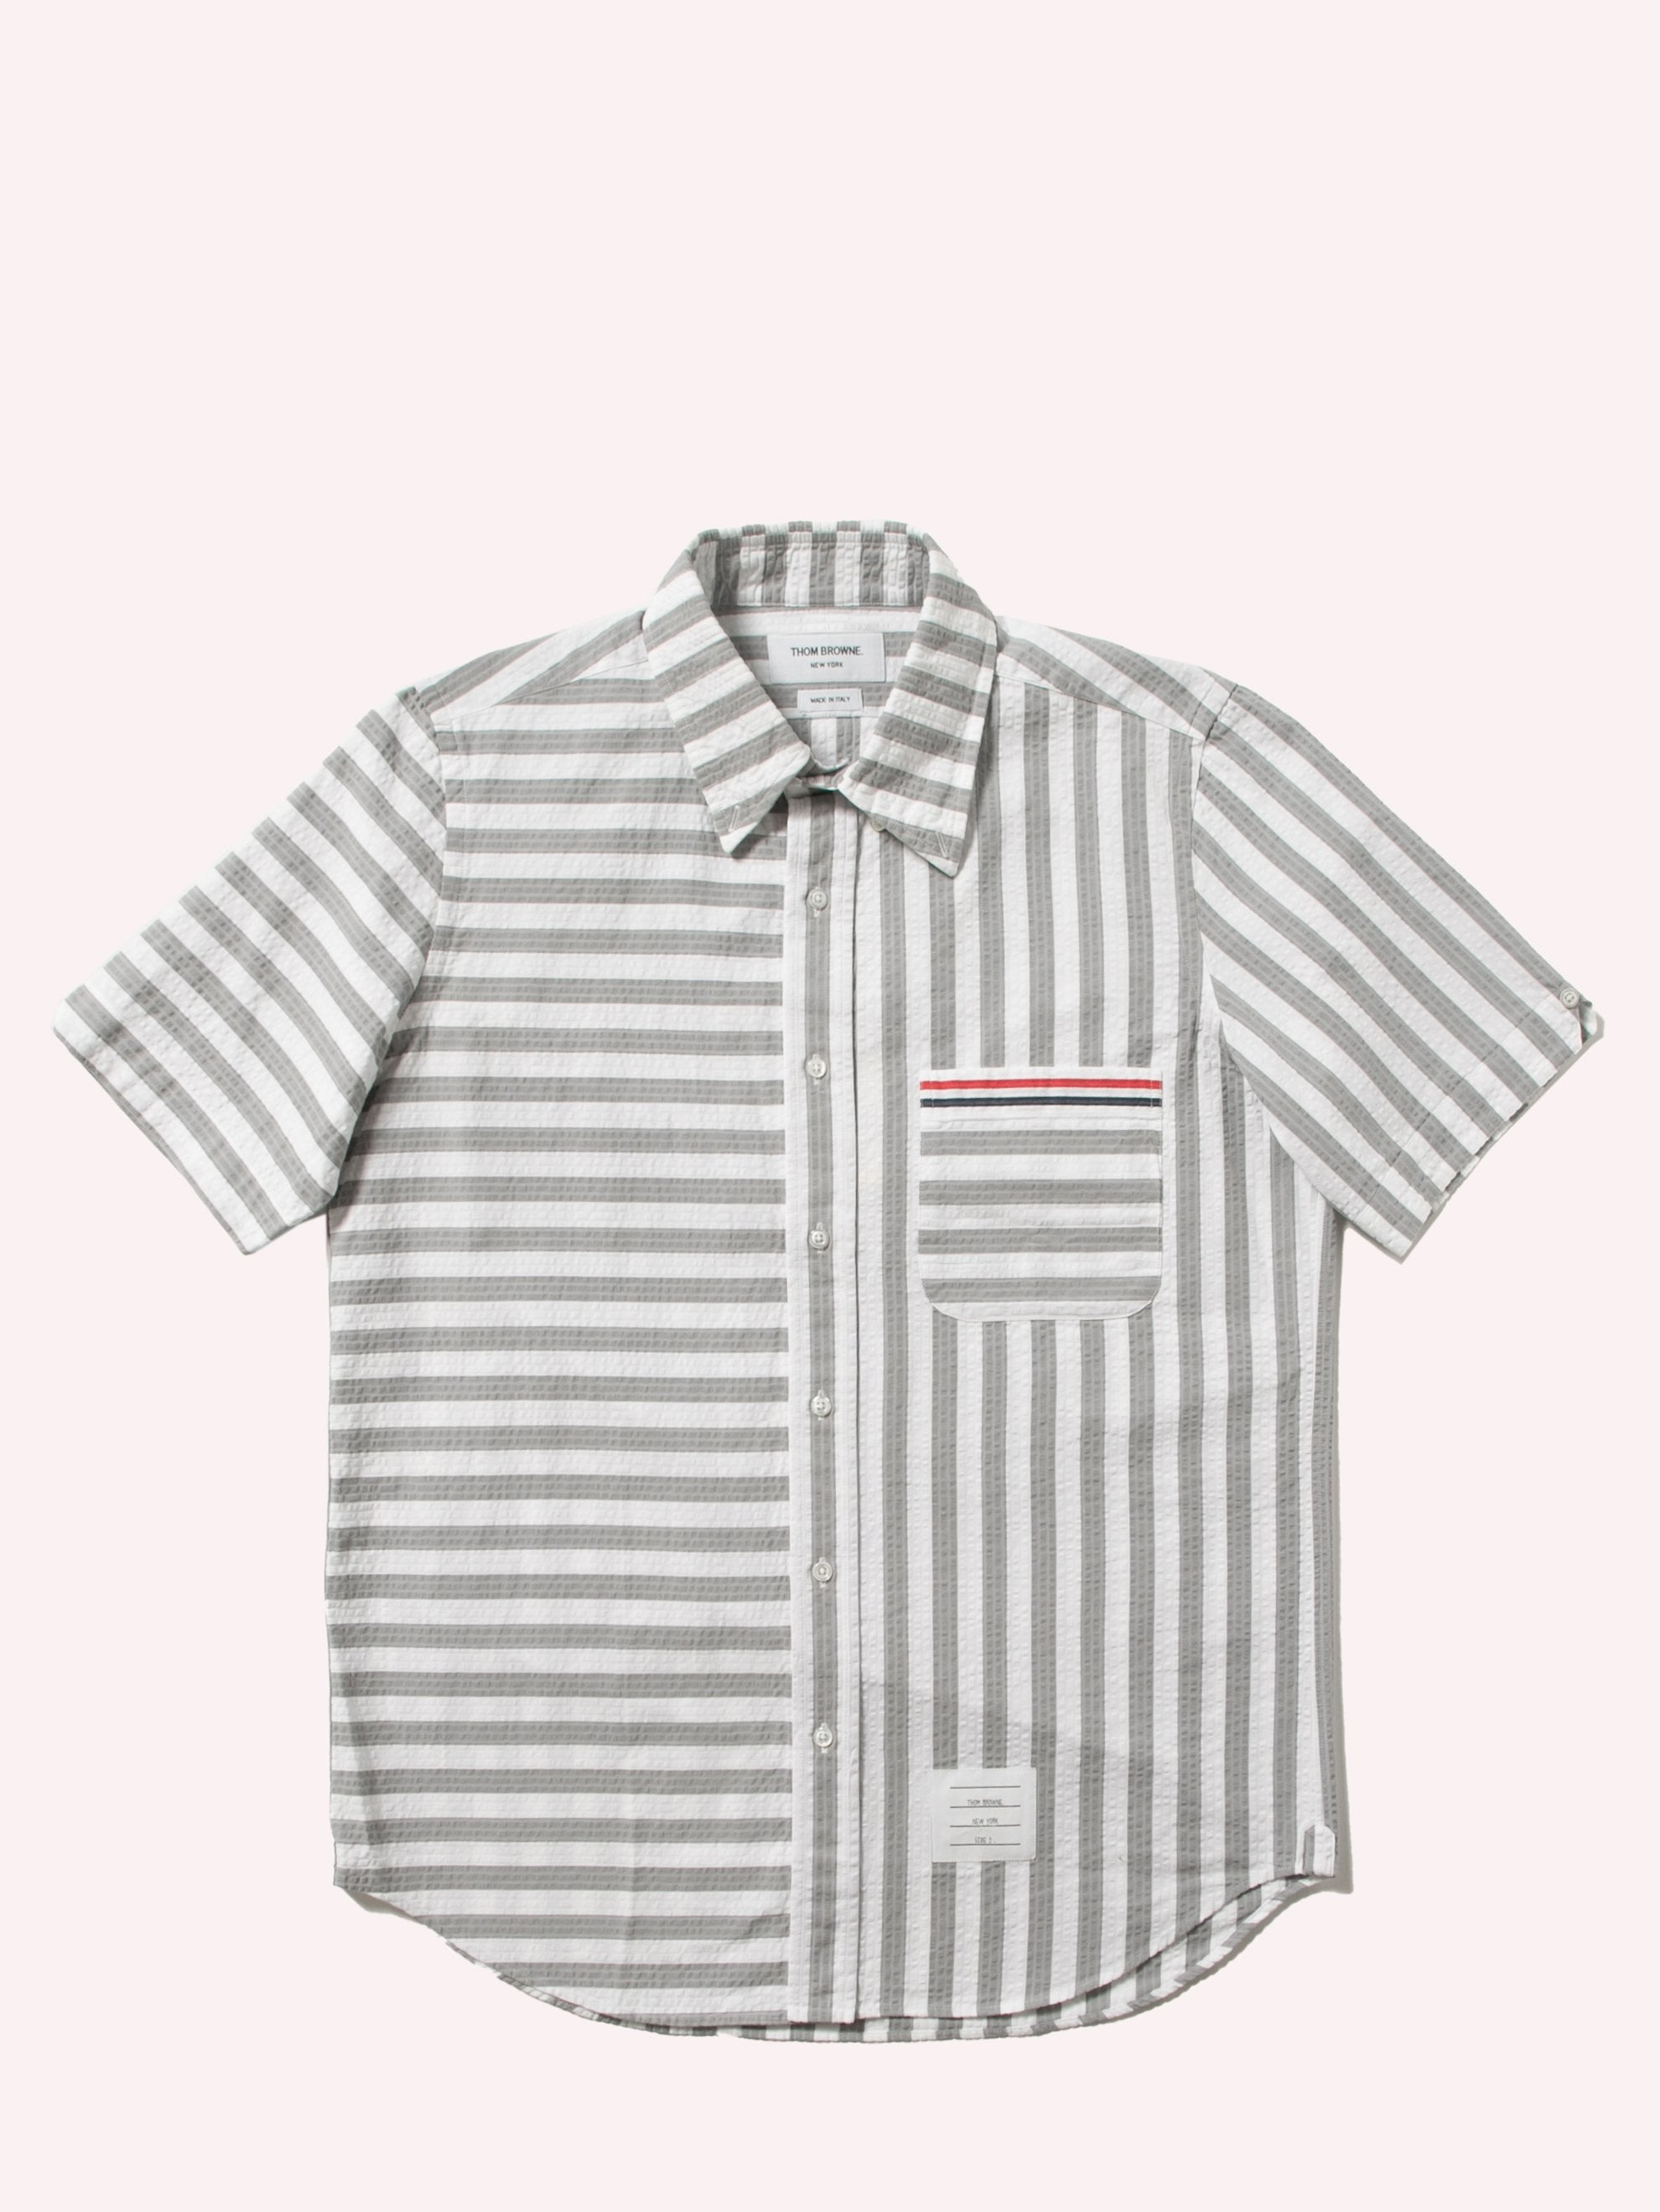 Med Grey Straight Fit Button Down Short Sleeve Shirt In Engineered RWB Wide Universty Stripe Shirt Seersucker 1